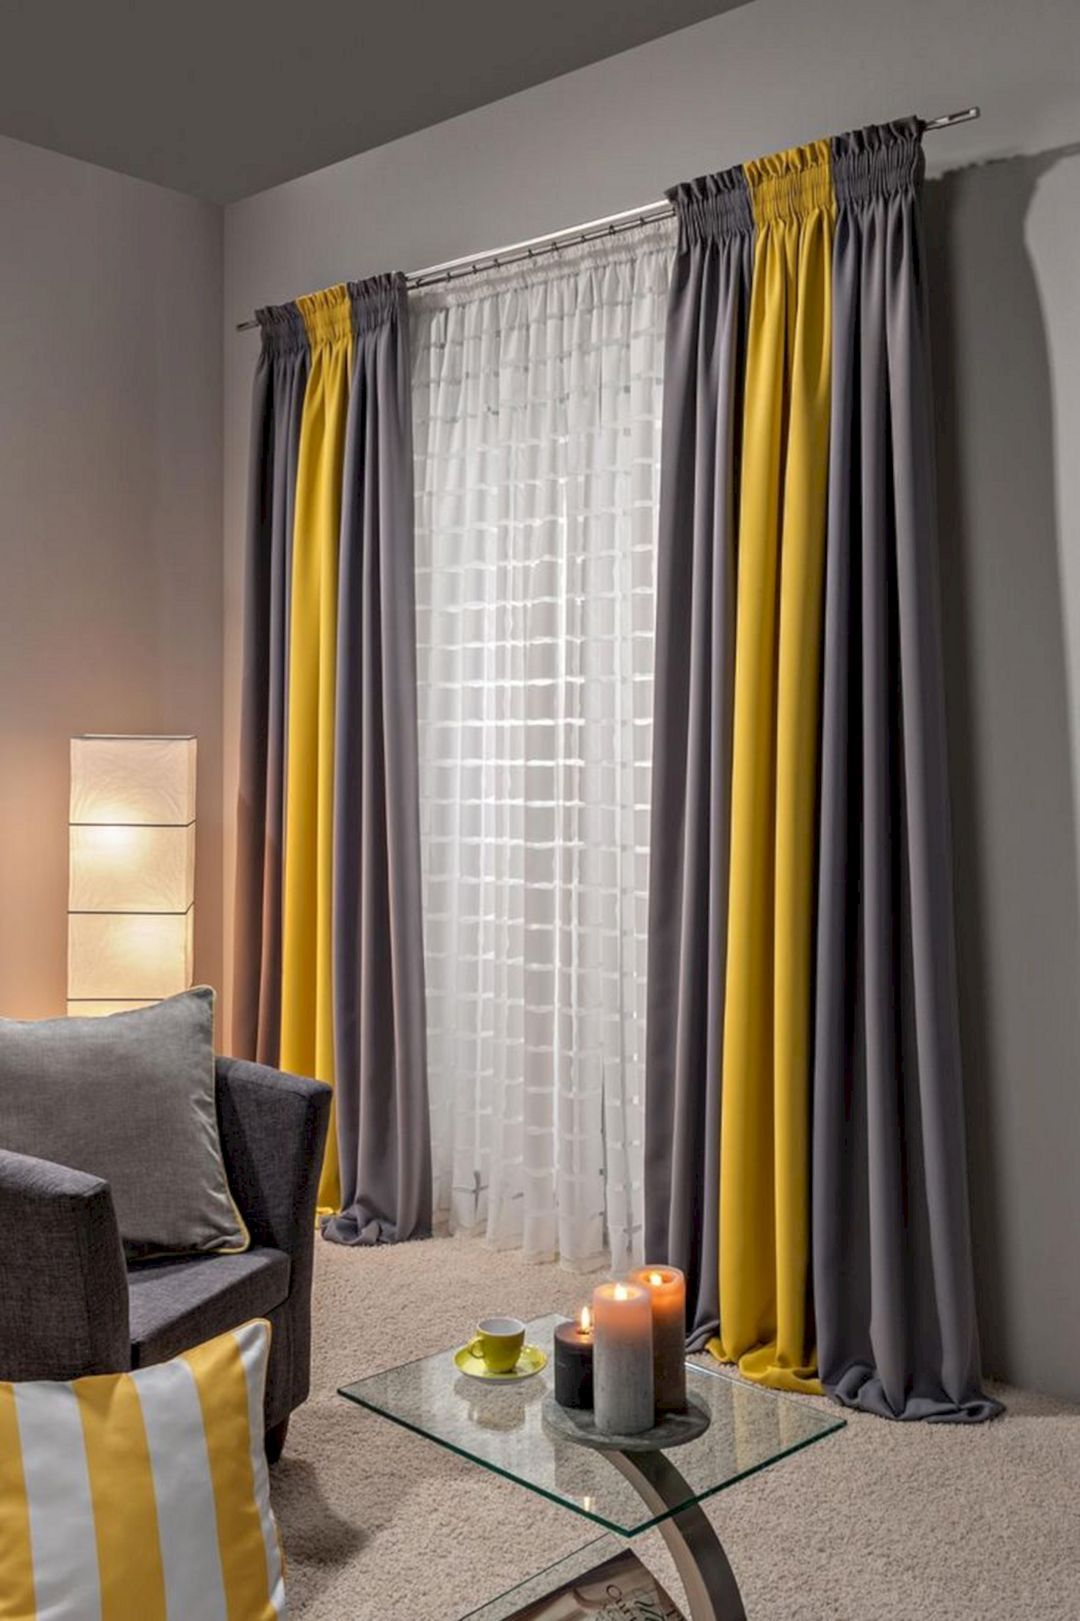 8 Minimalist Home Curtain Ideas Which Makes Home More Esthetic In 2020 Living Room Decor Curtains Curtains Living Room Yellow Living Room